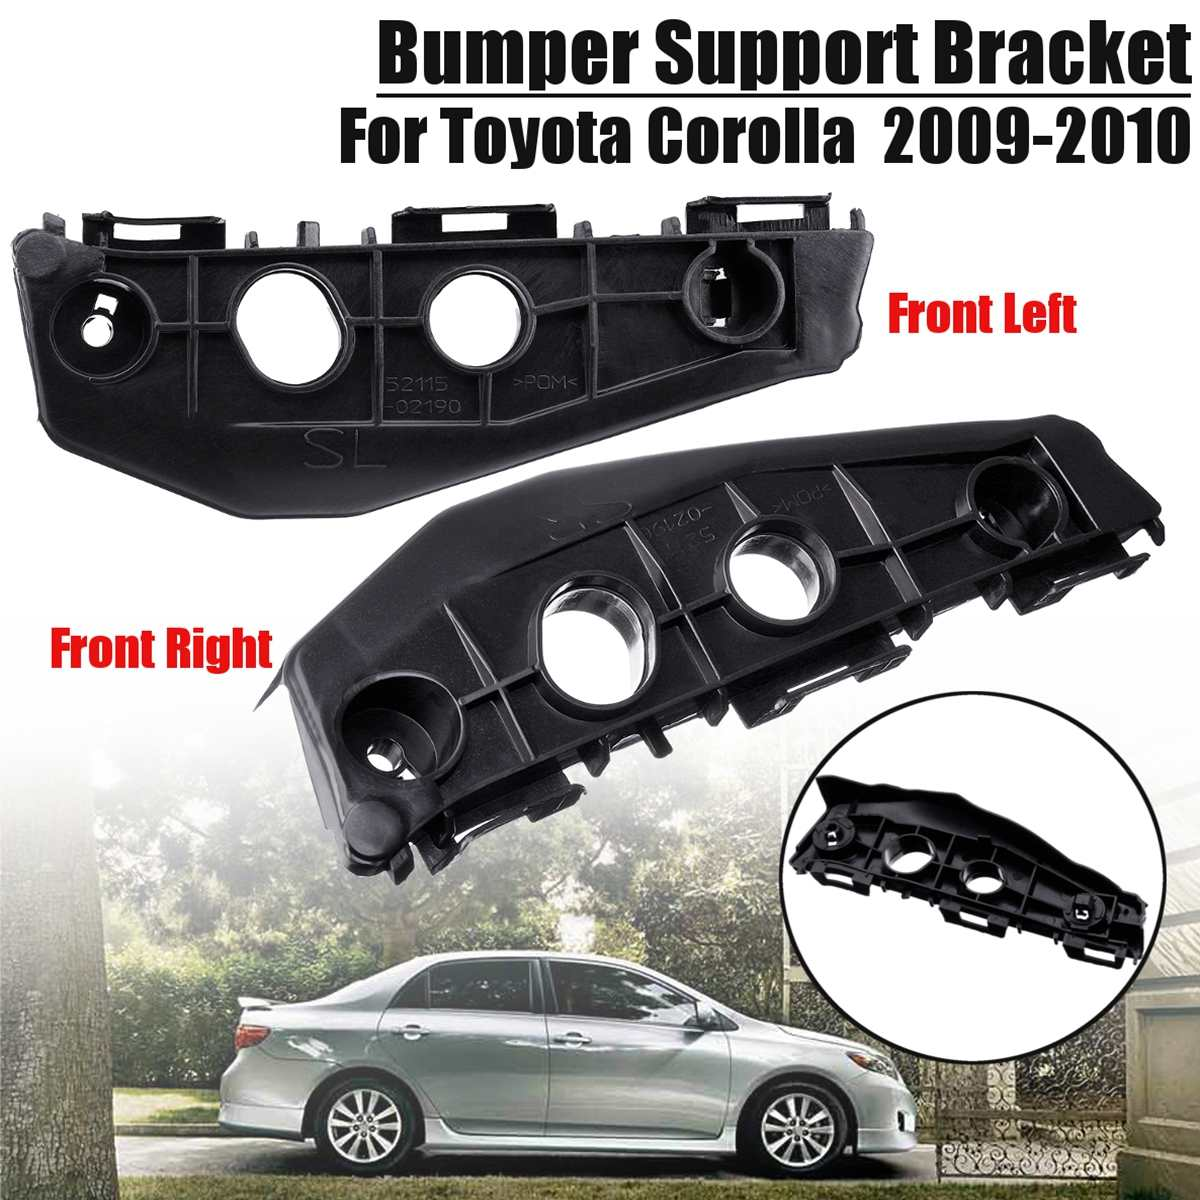 Passenger Side Bumper Bracket for Toyota Corolla 2009-2010 New TO1043110 Front